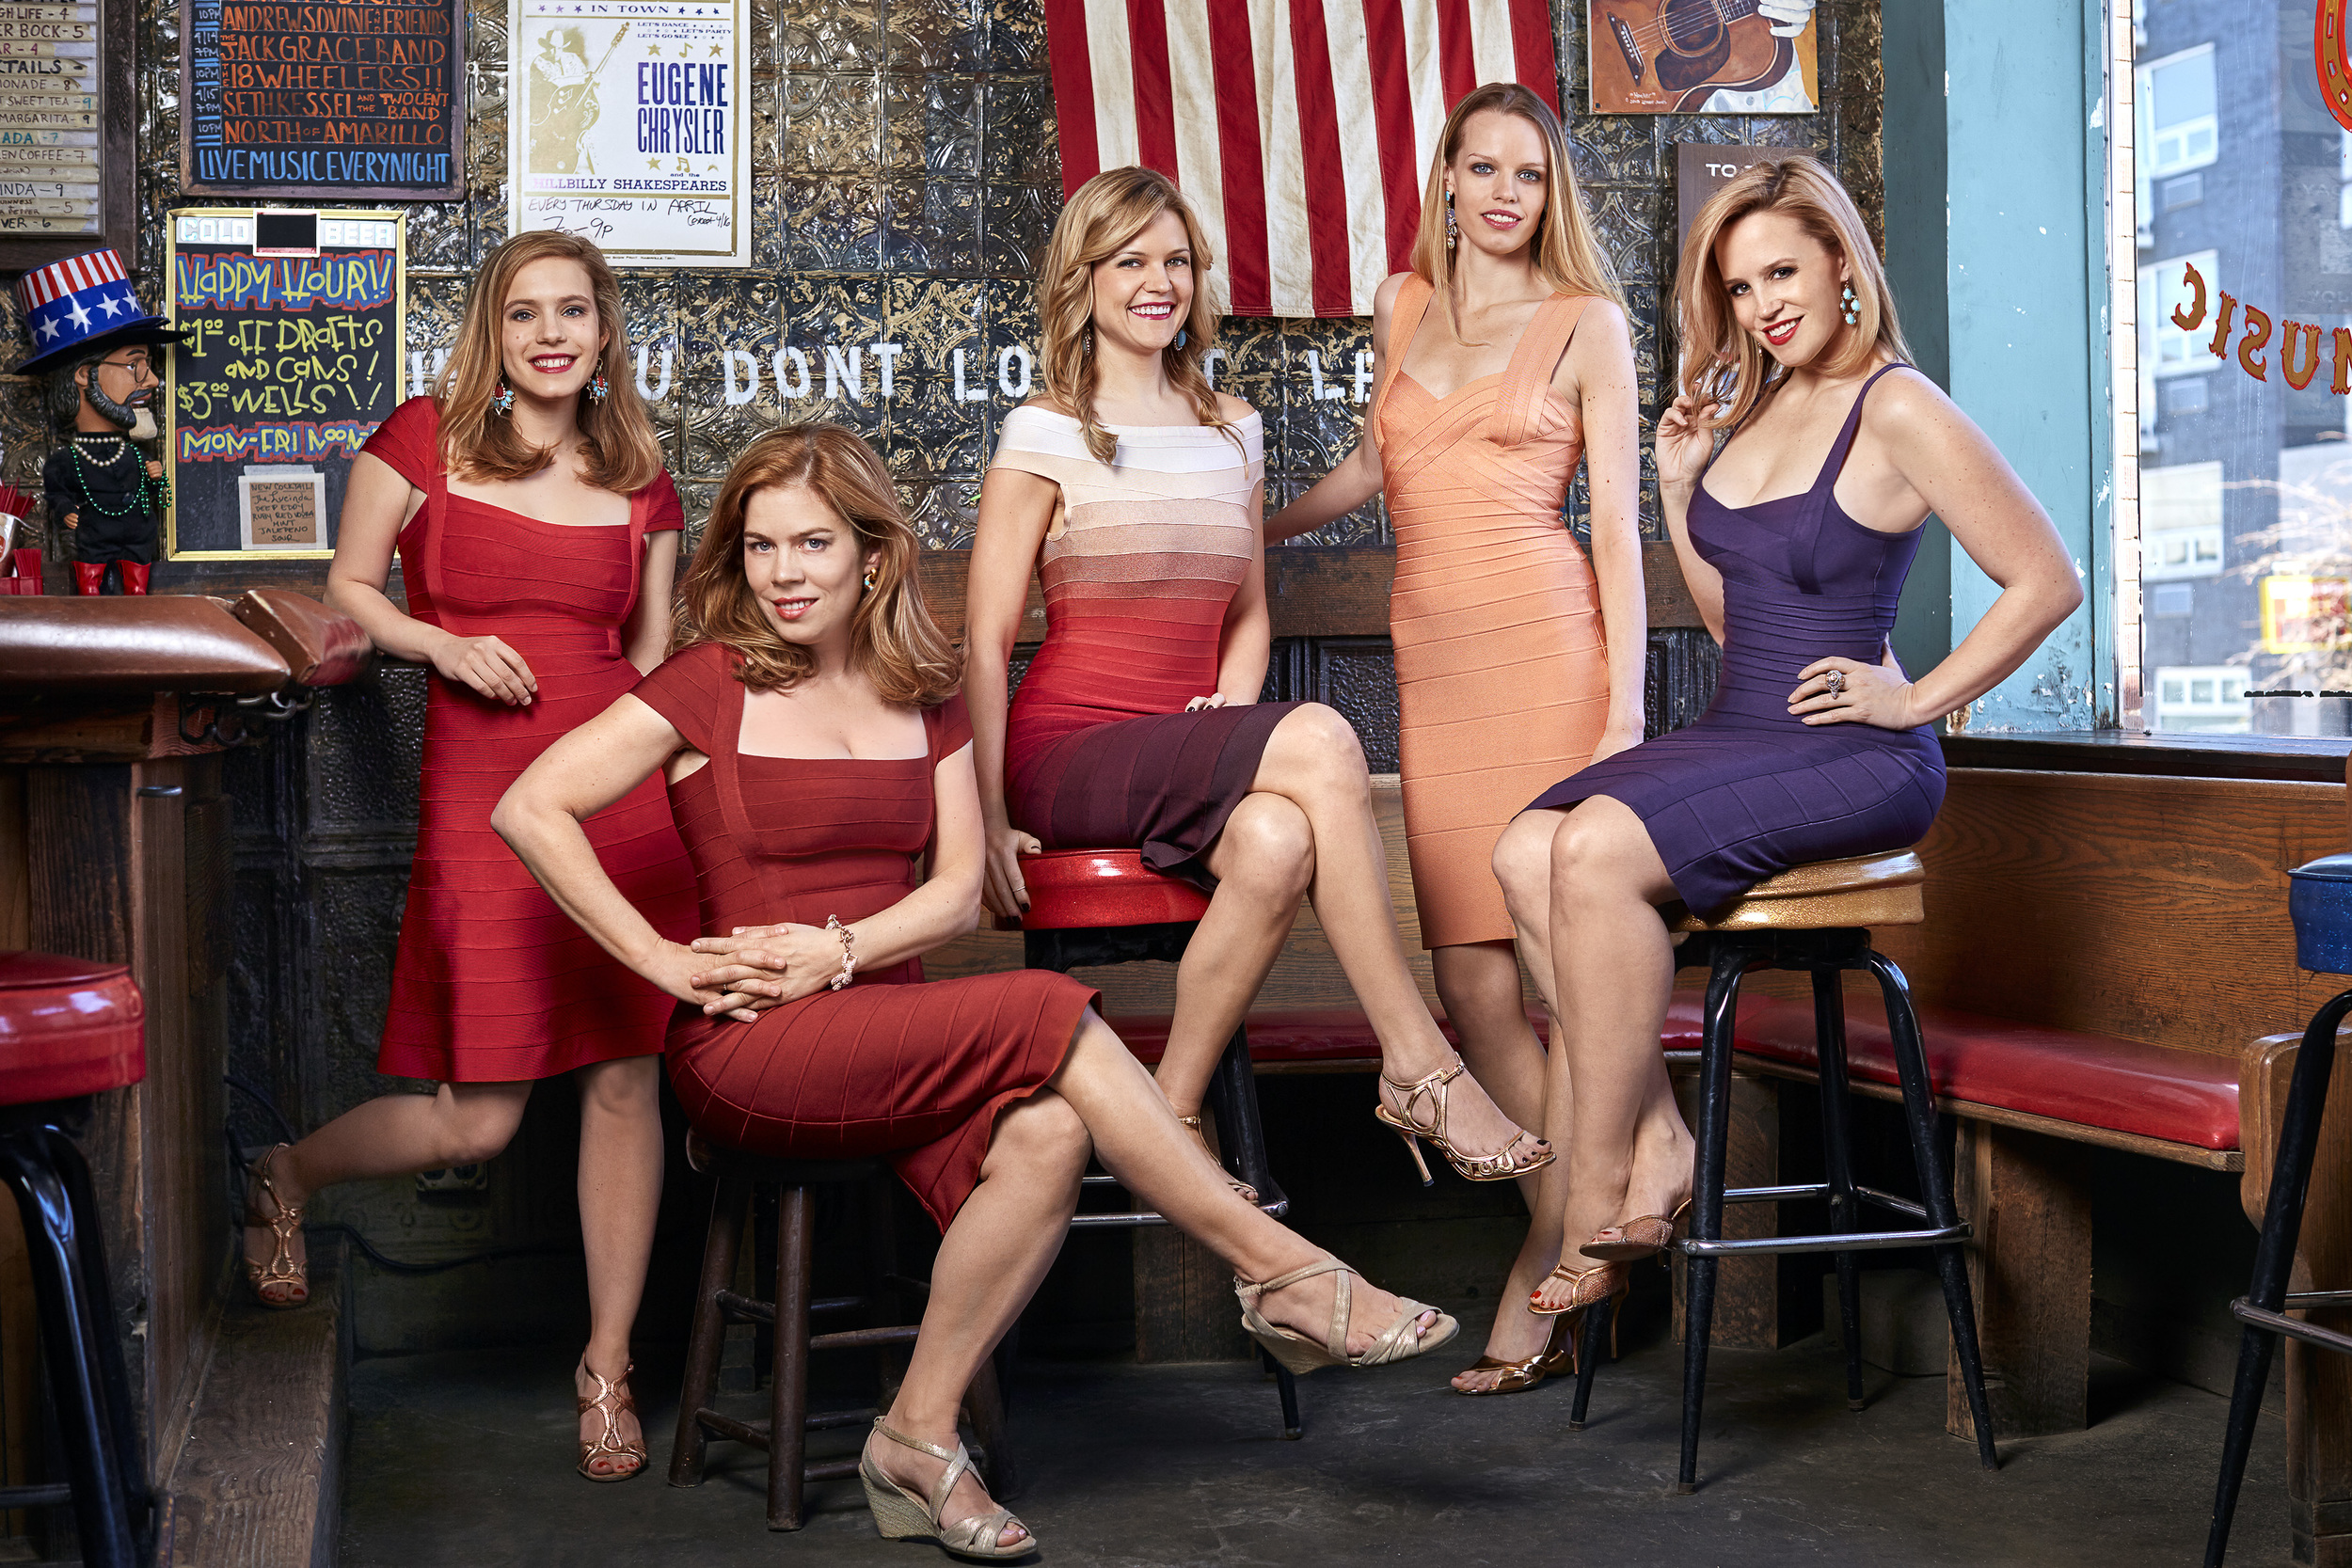 From left to right, Your Ex-Girlfriends are: Caitlin O'Connell, Kari Nelson, Lindsay Ryan, Caitlin Kelly, and Kat Thomsen.  Portrait by   Marc McAndrews  .  Wardrobe by  Herve Leger . Photographed at  Skinny Dennis .